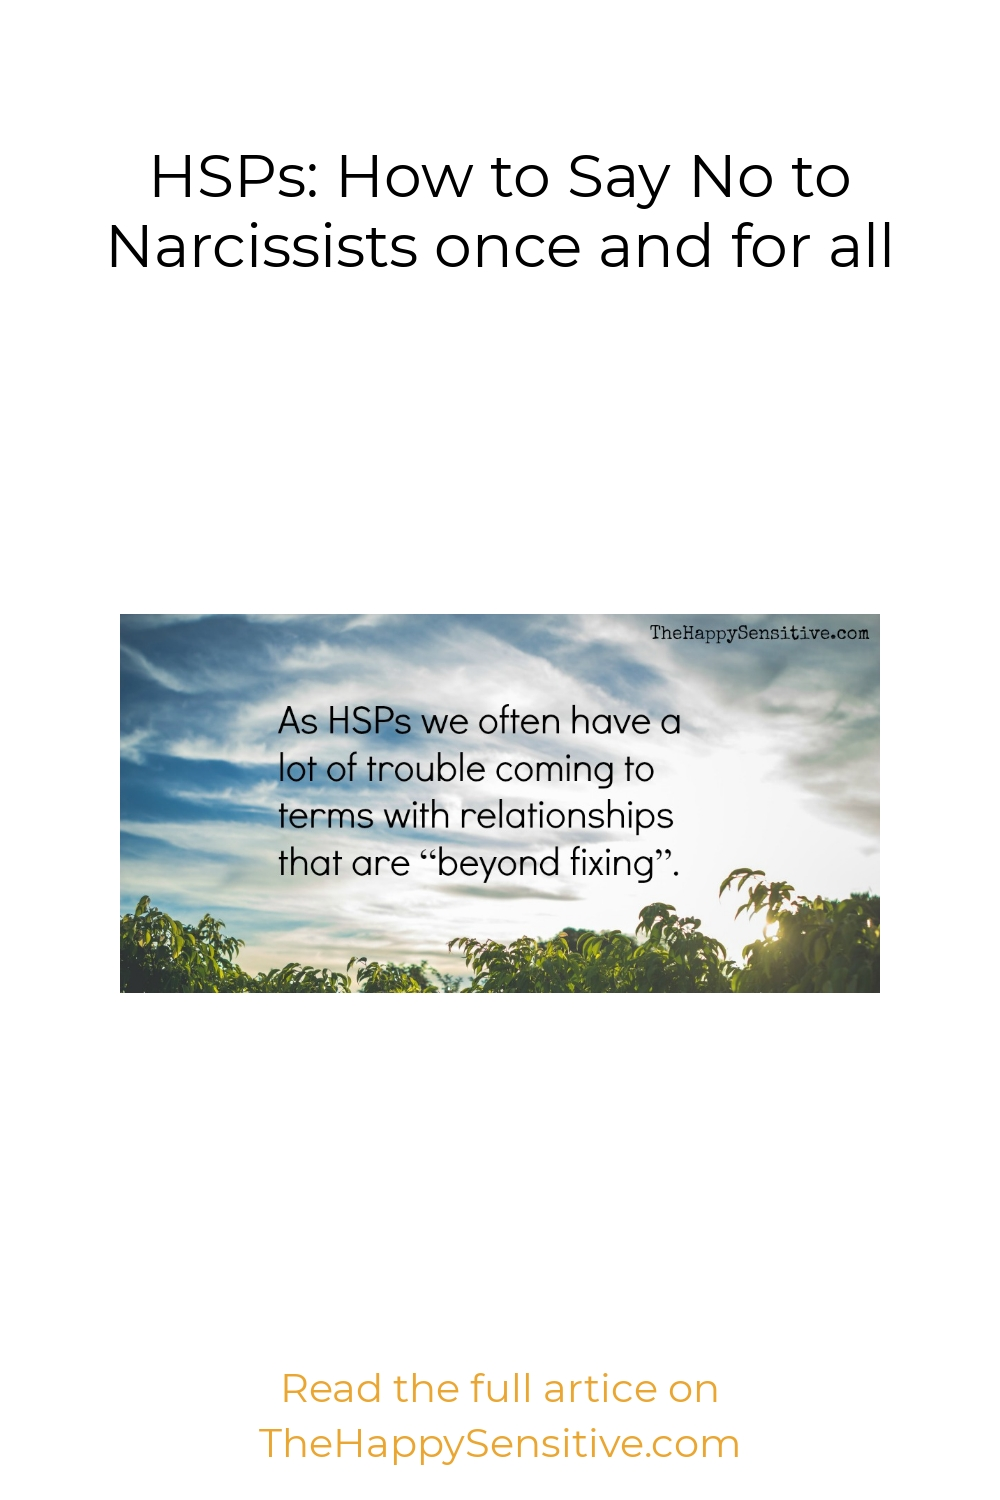 HSPs: How to Say No to Narcissists once and for all